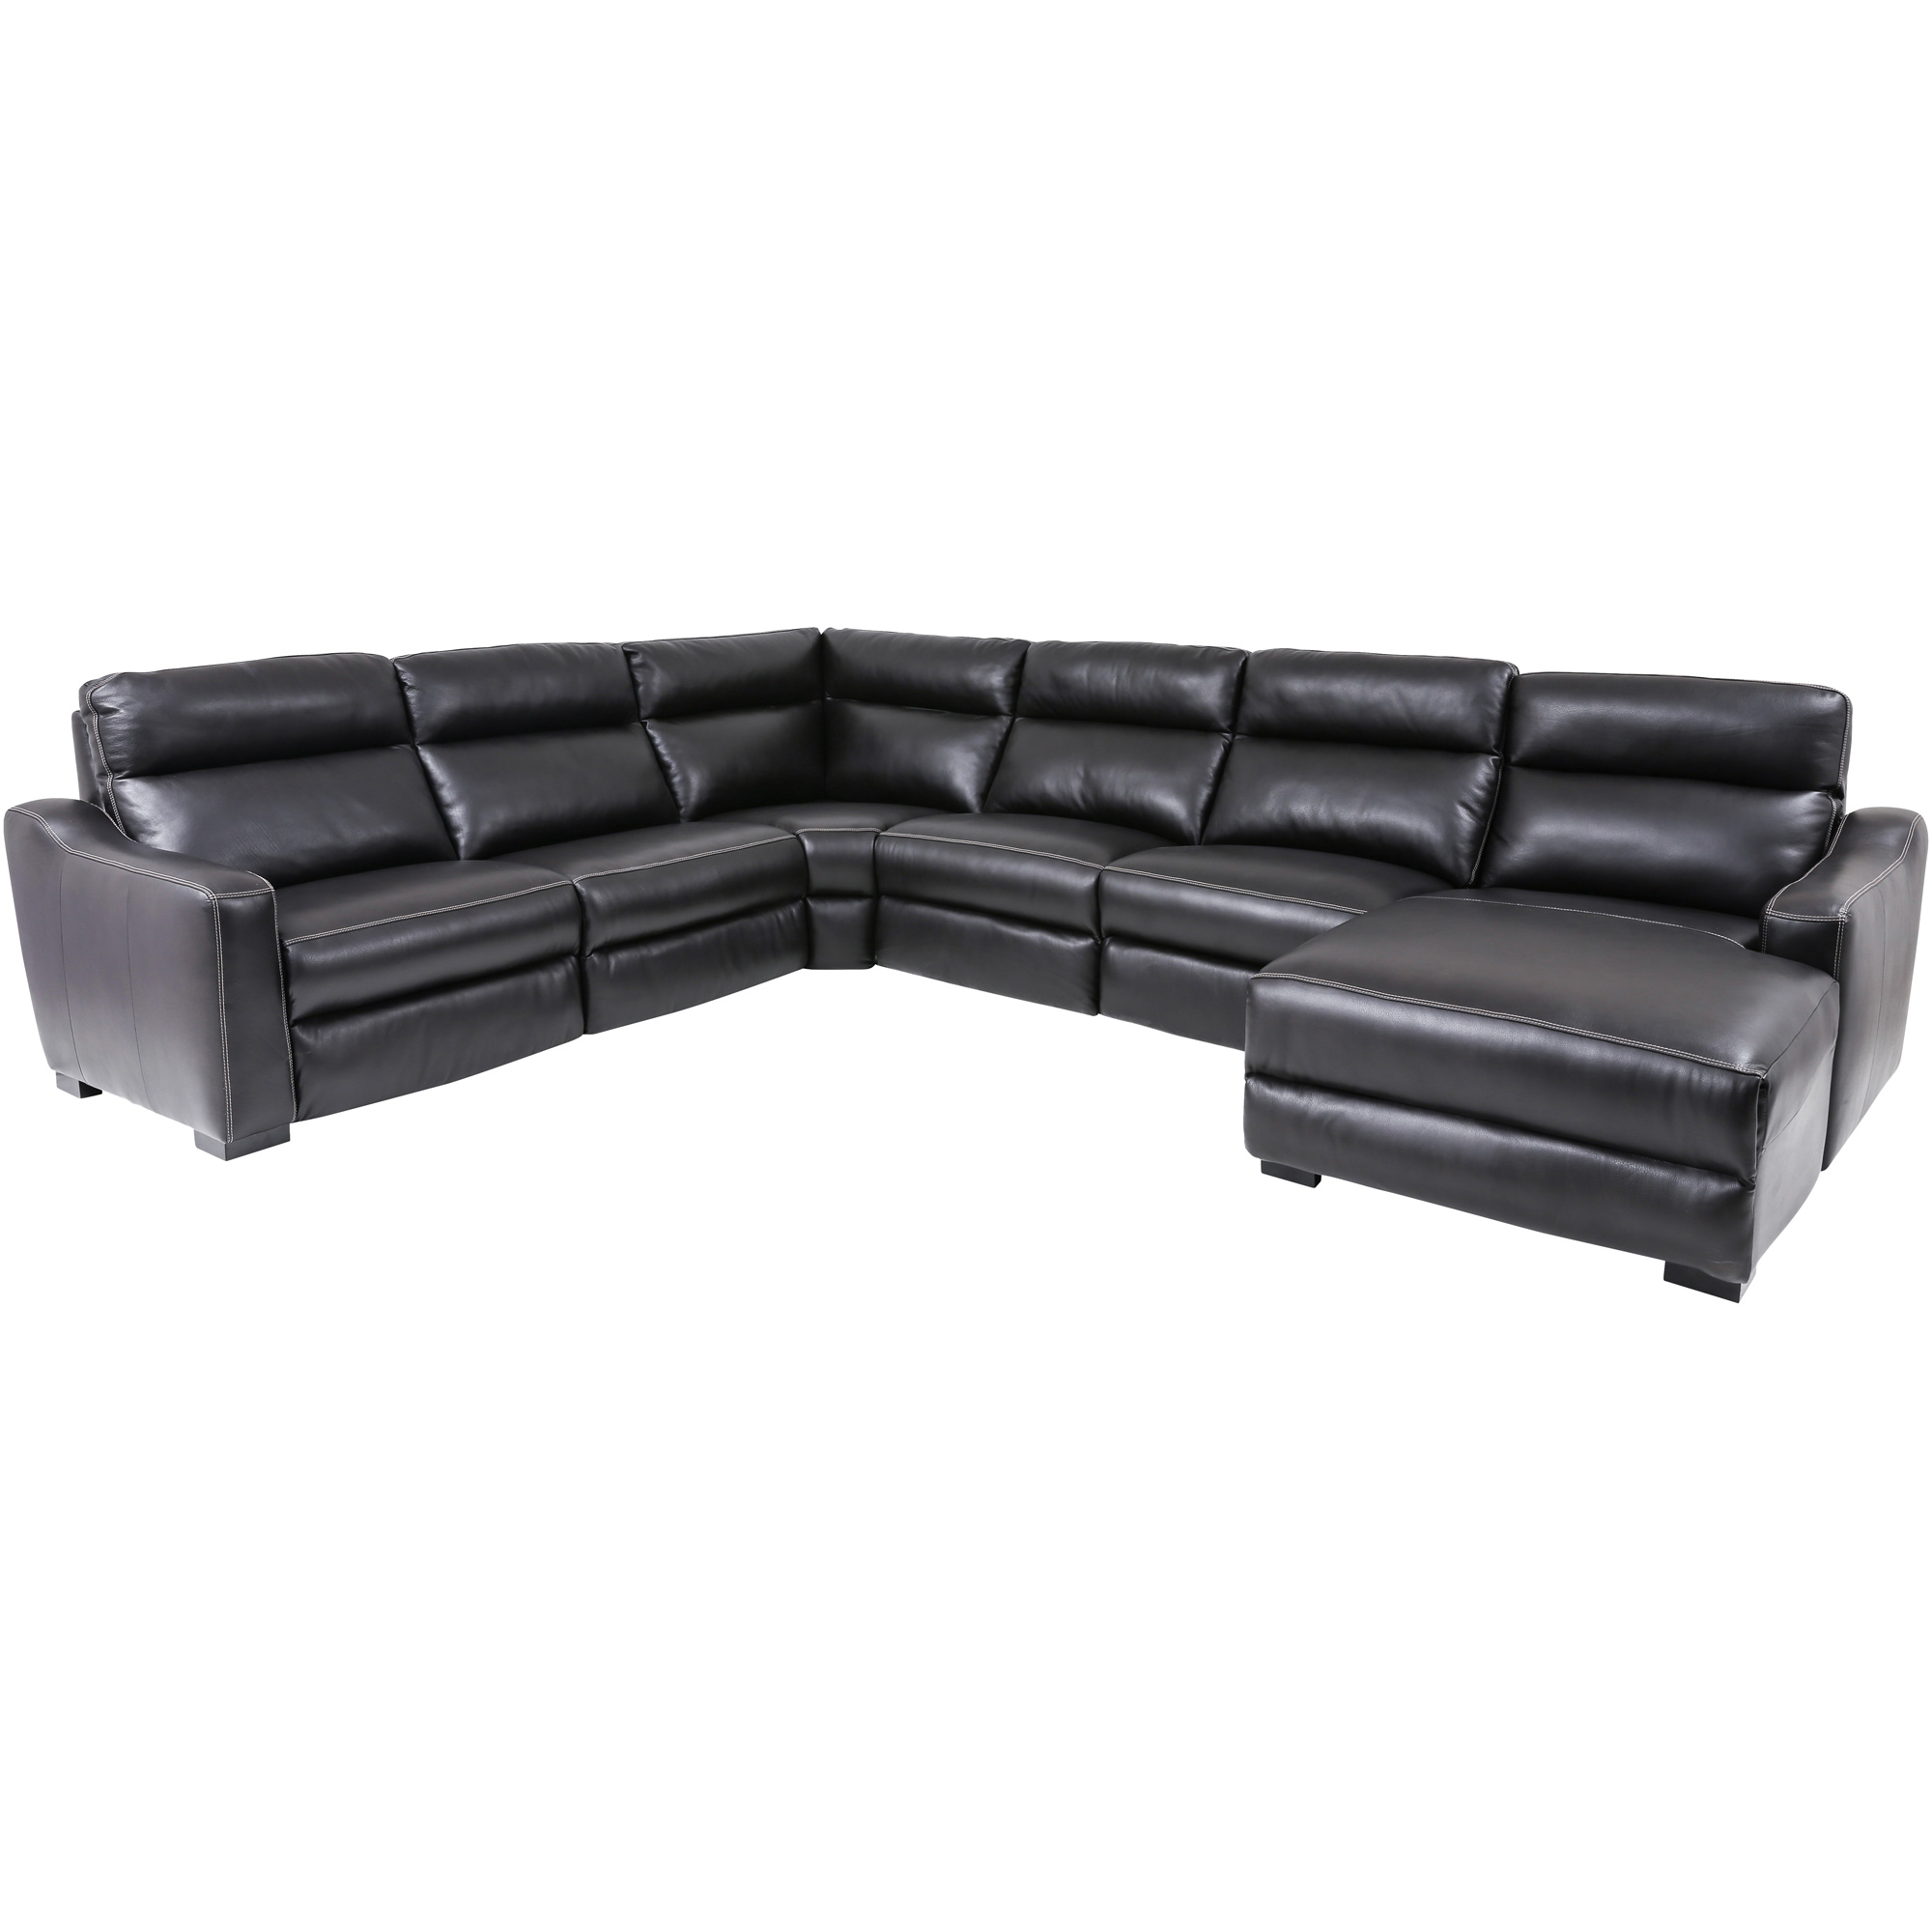 Wah Cheers | Aveo Blackberry Leather Right 6 Piece Power Plus Reclining Chaise Sectional Sofa